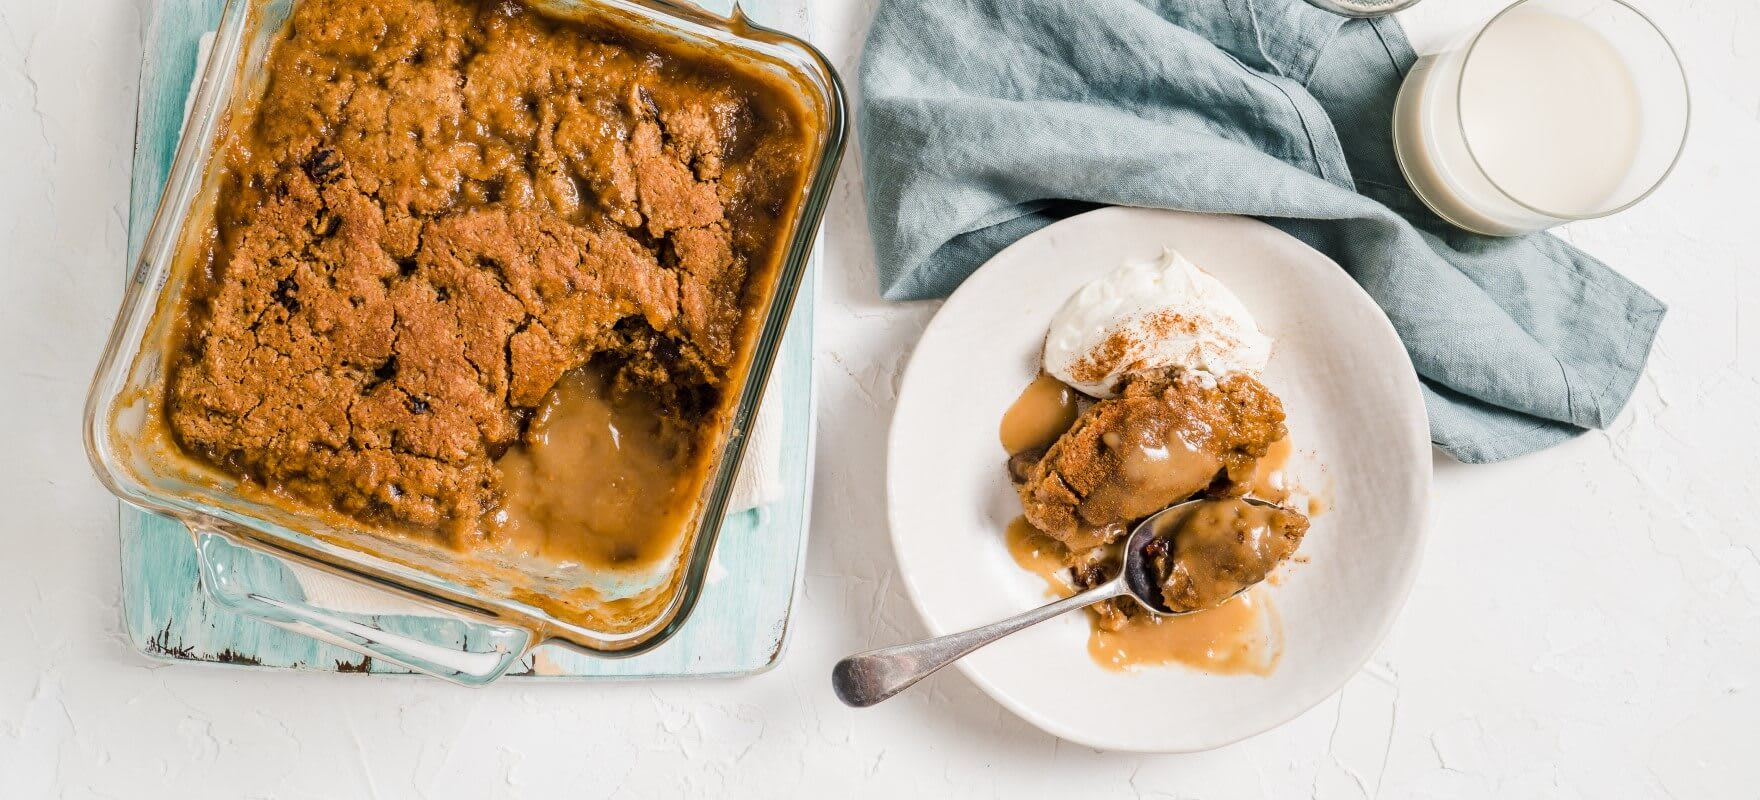 Self-saucing sticky date pudding image 1